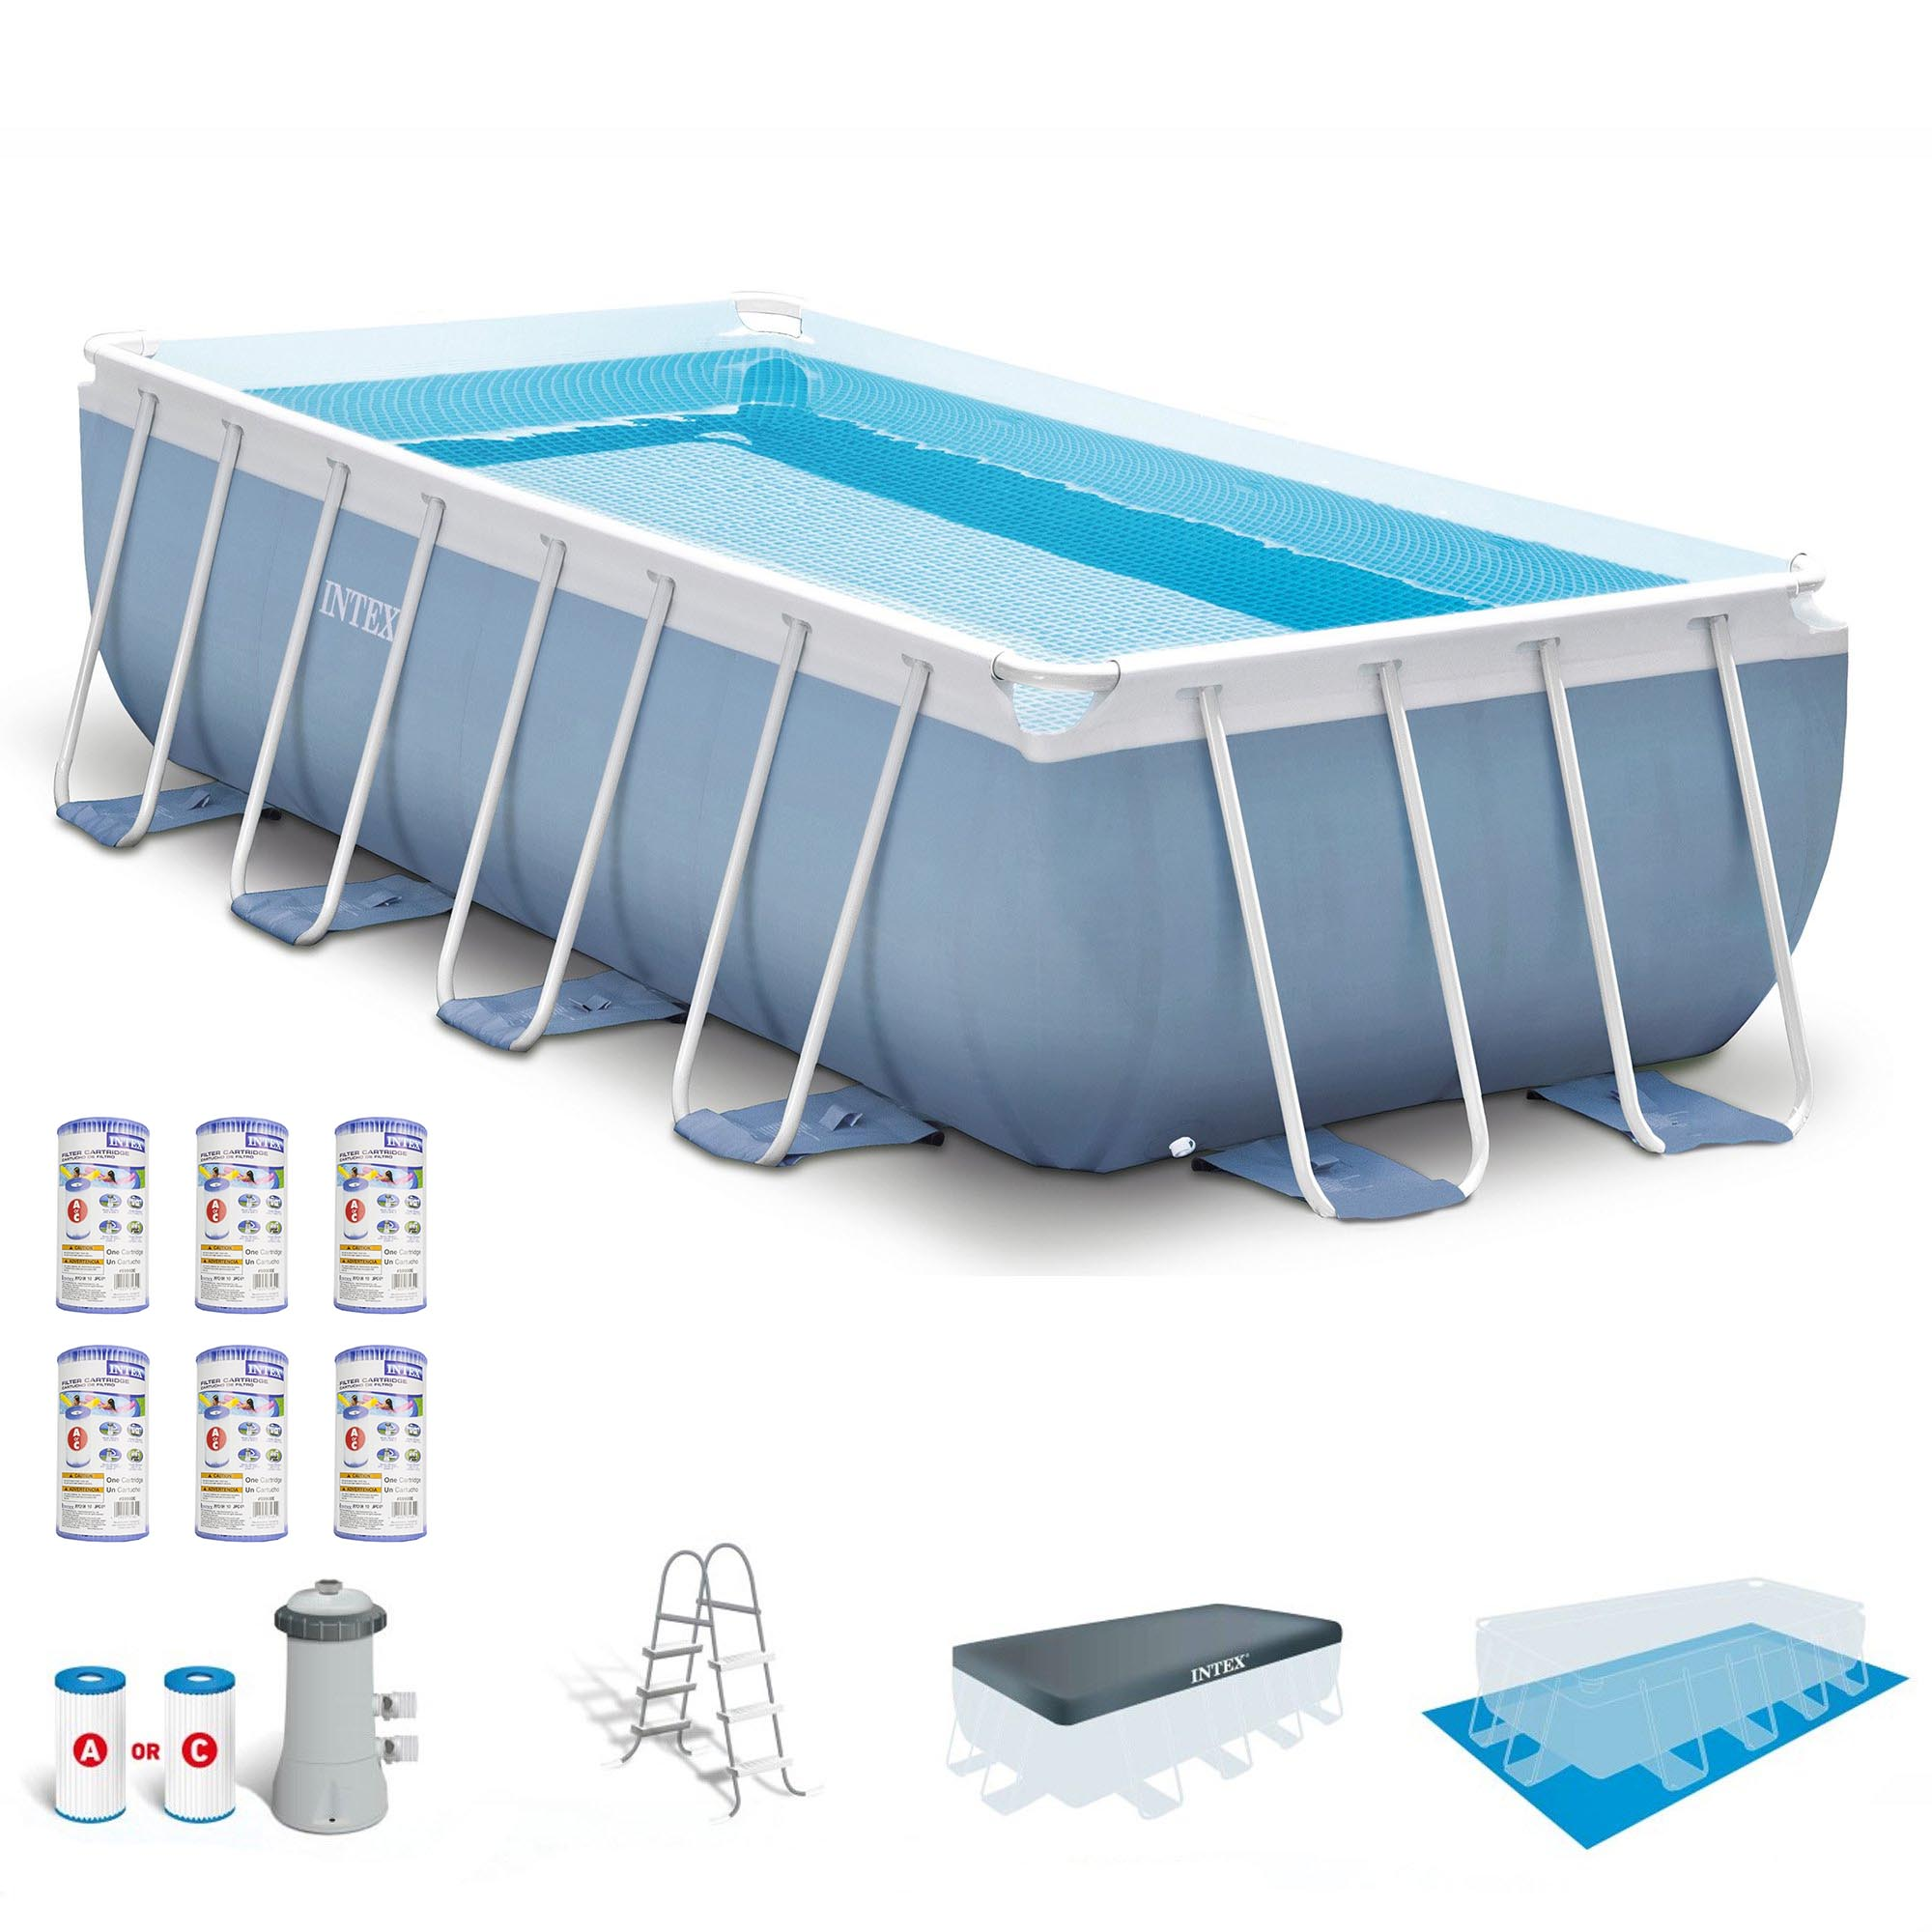 "Intex 16' x 8' x 42"" Prism Frame Above Ground Pool Set w/ Filter Pump Cartridges"